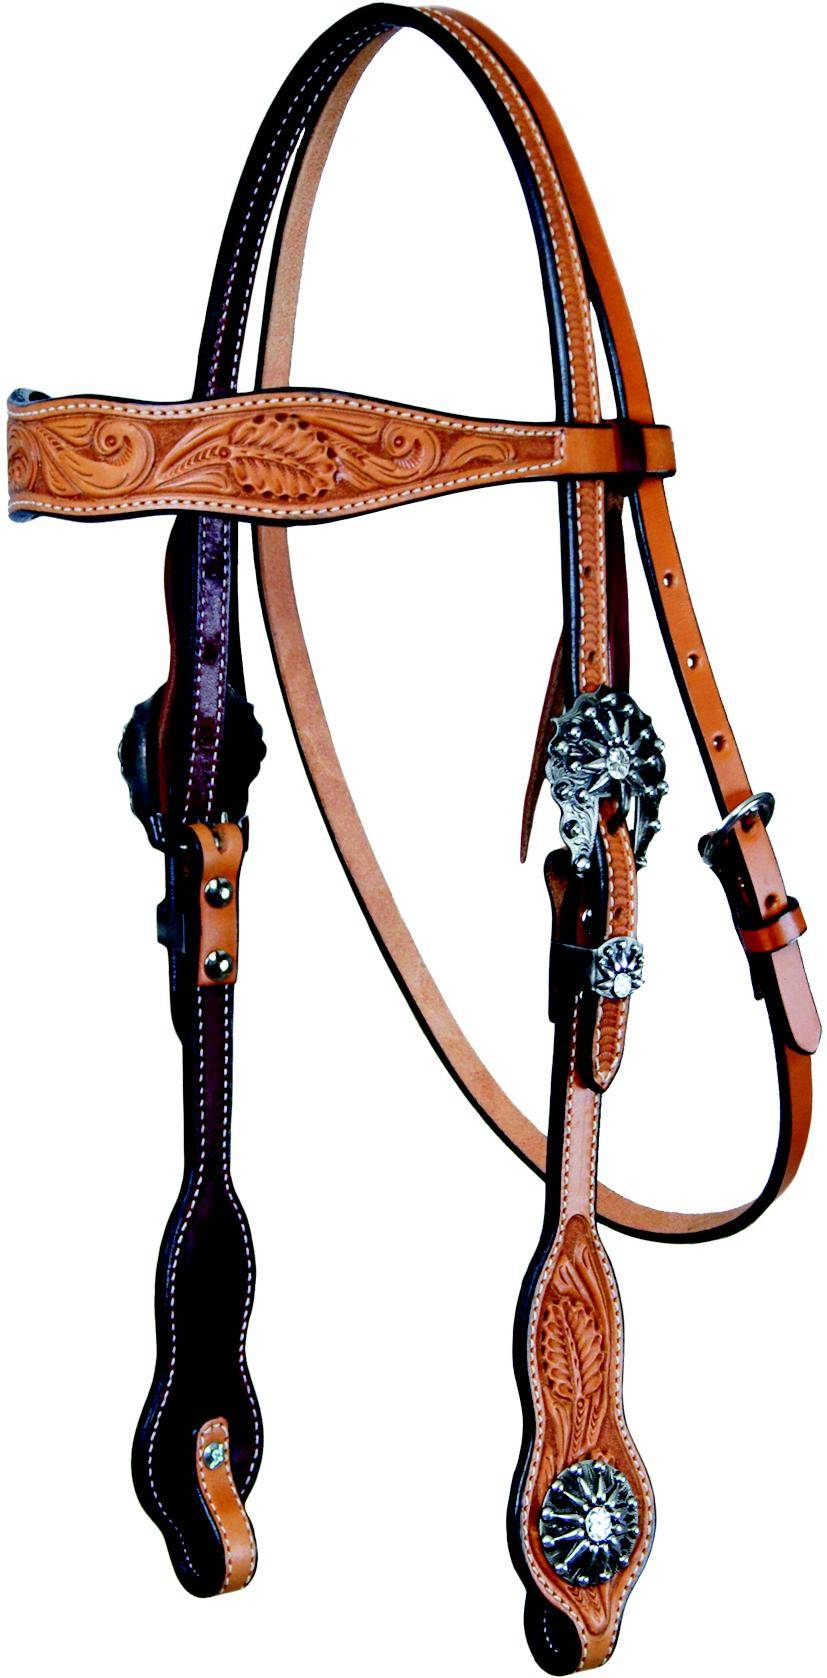 REINSMAN Tooled Browband Headstall With Sunburst Conchos